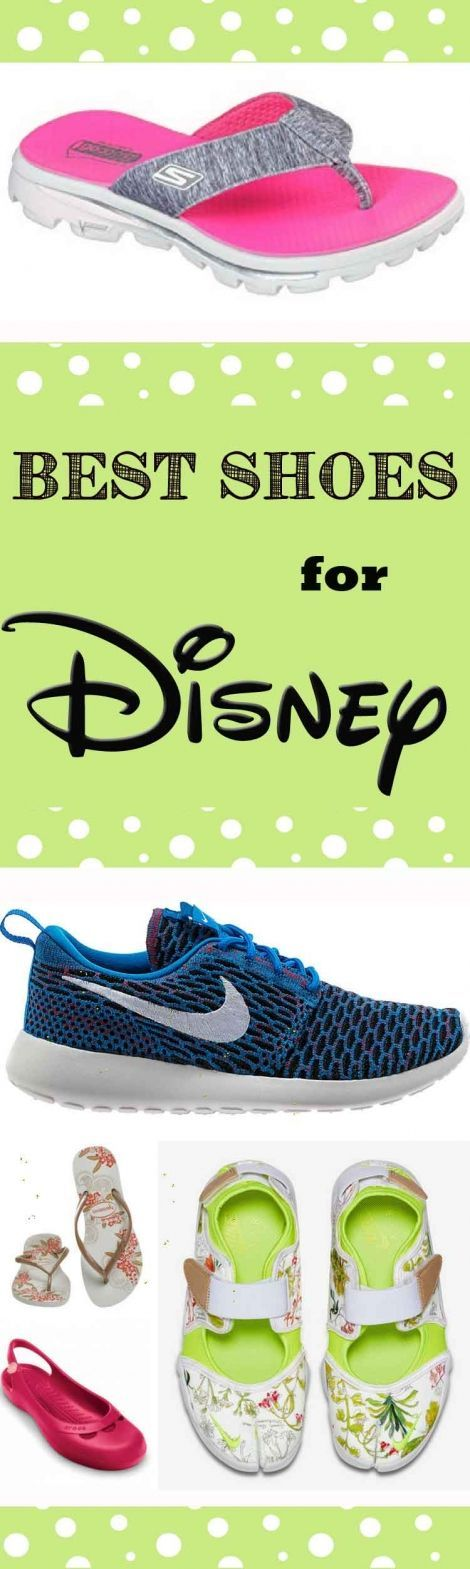 Best shoes for Disney World and Disneyland.  What are the best and most comfortable shoes to wear into the parks?  From Skechers to Flip Flops, here is what we thought! #disneyworld #disneyland #vacation #planning